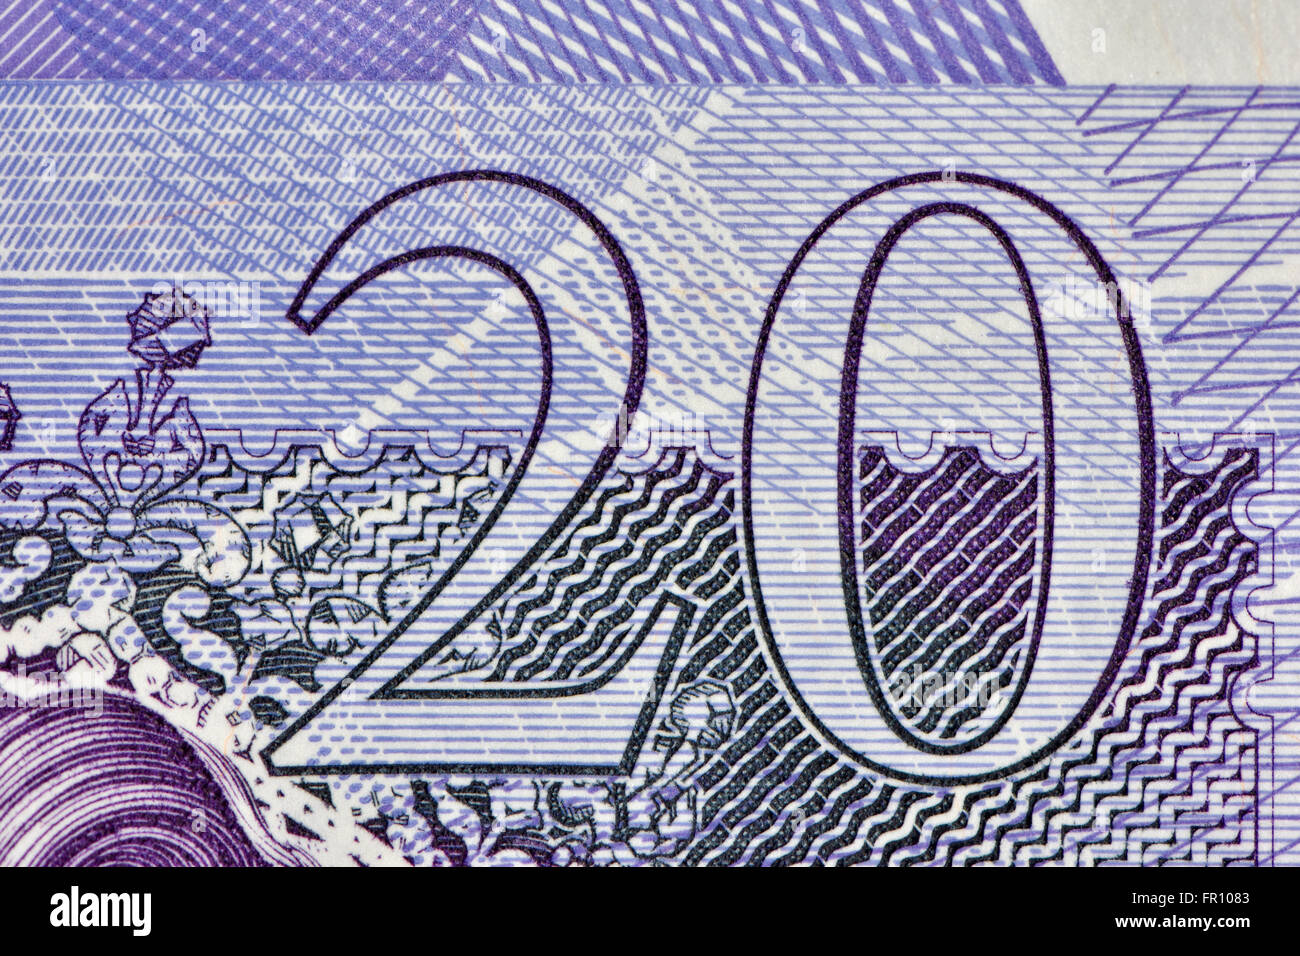 Close up of a Twenty pound bank note in British Sterling currency - Stock Image